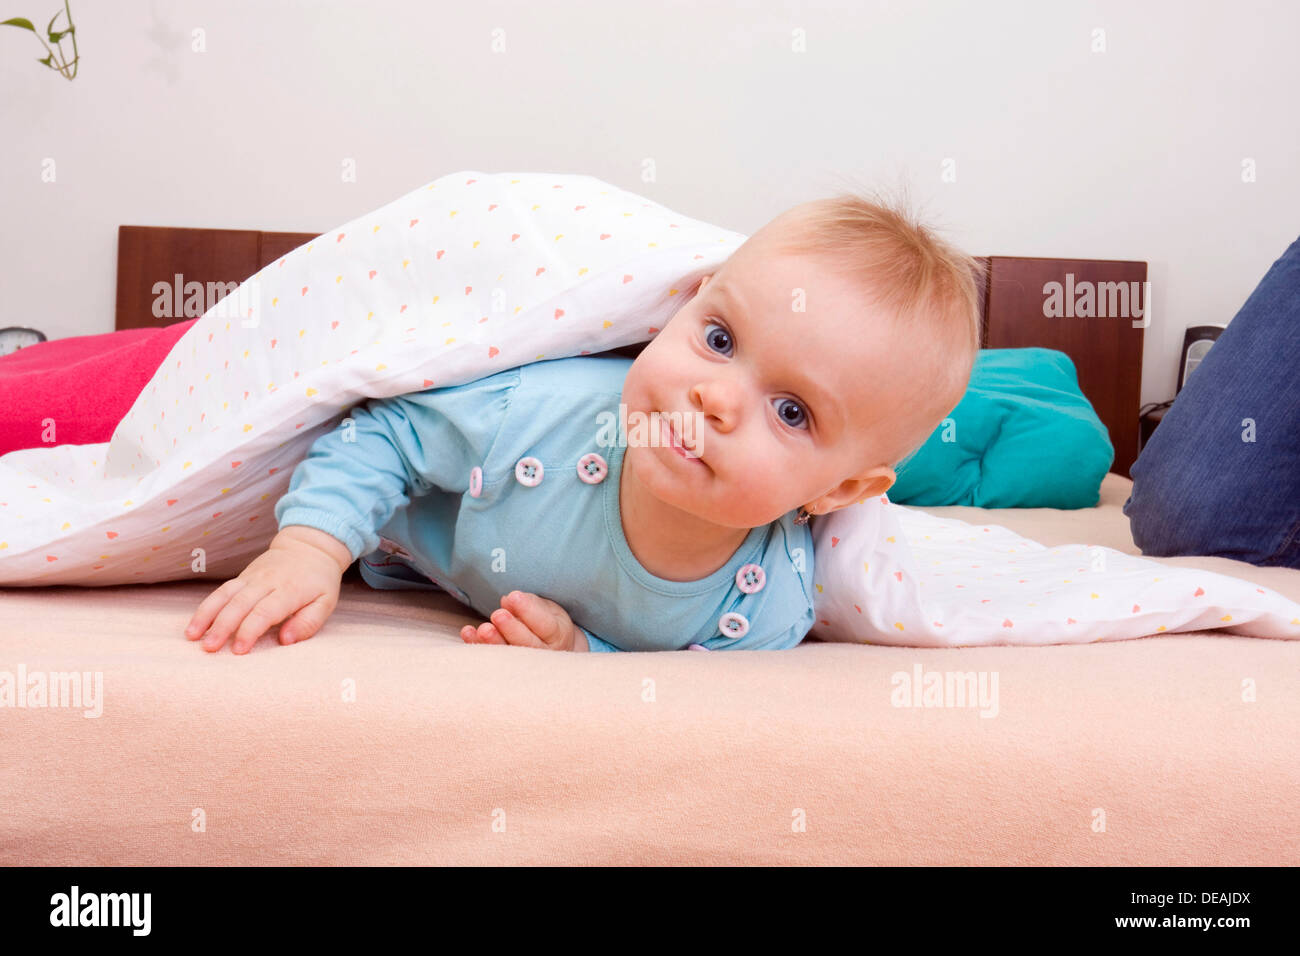 baby 1 jahr auf dem bett stockfoto bild 60470310 alamy. Black Bedroom Furniture Sets. Home Design Ideas